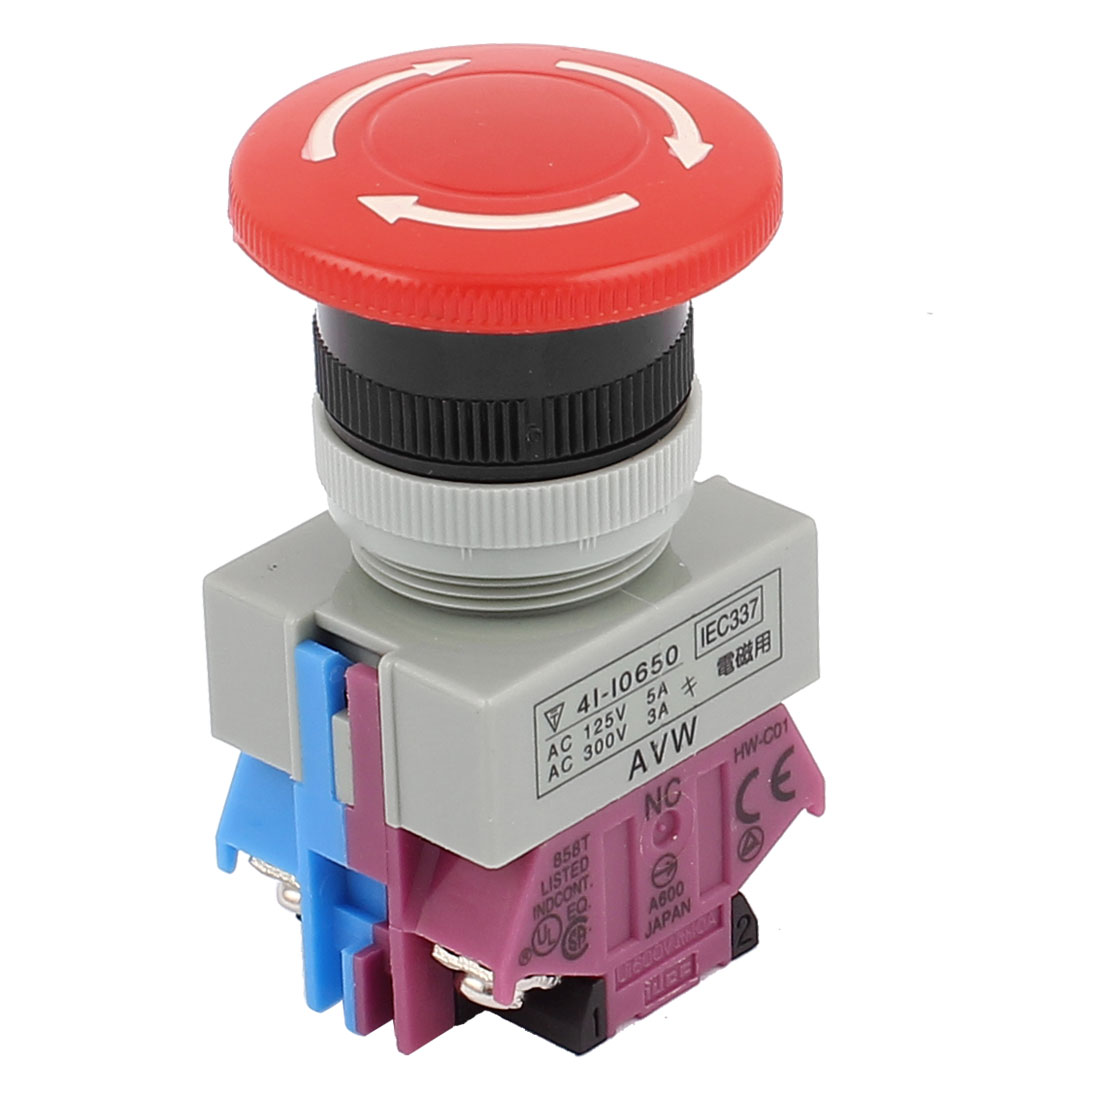 AC 125V 5A AC300V 3A 1NO+1NC DPST Latching Action Panel Mounted Mushroom Head Rotary Push Button Switch